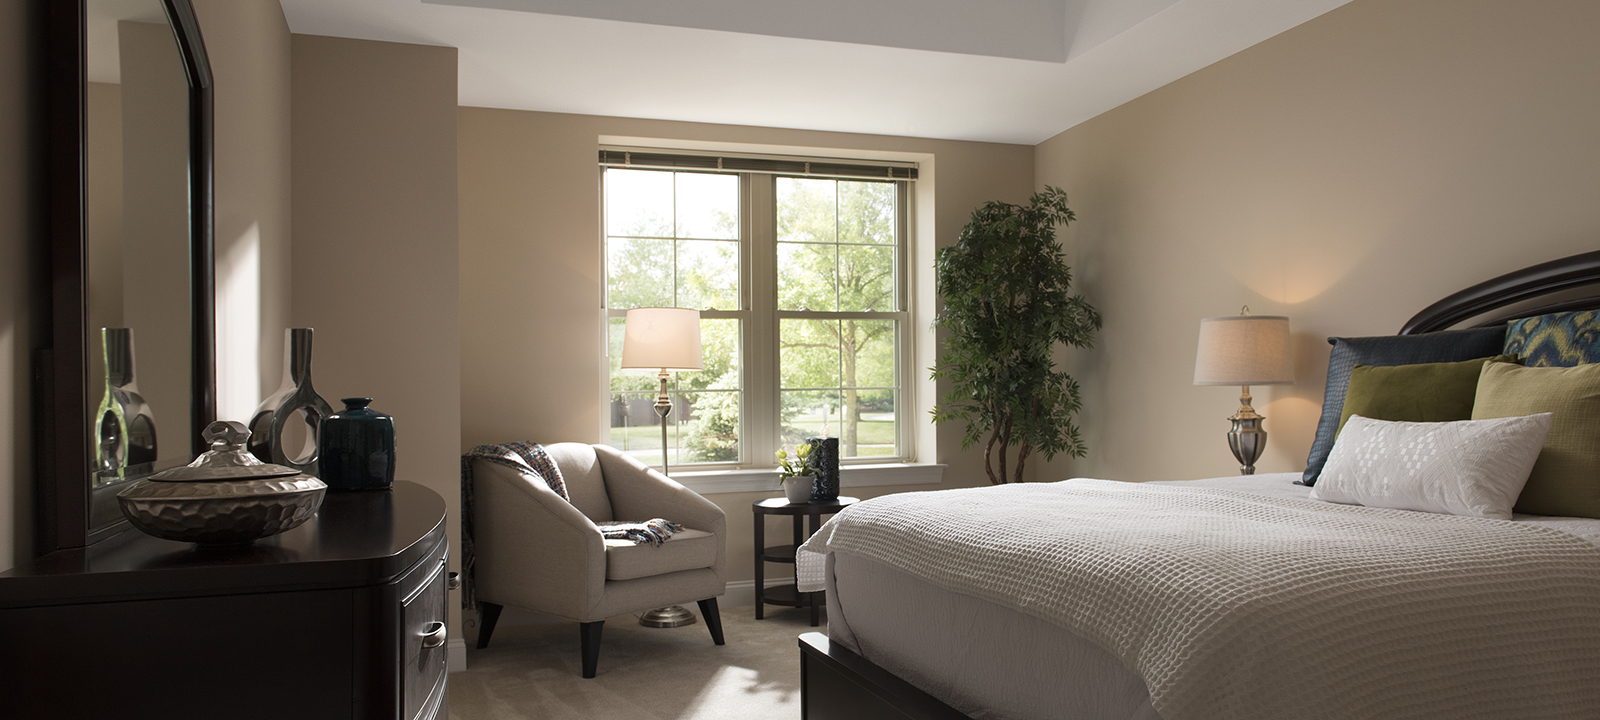 bedroom at Meridian at Eagleview apartments in Exton PA